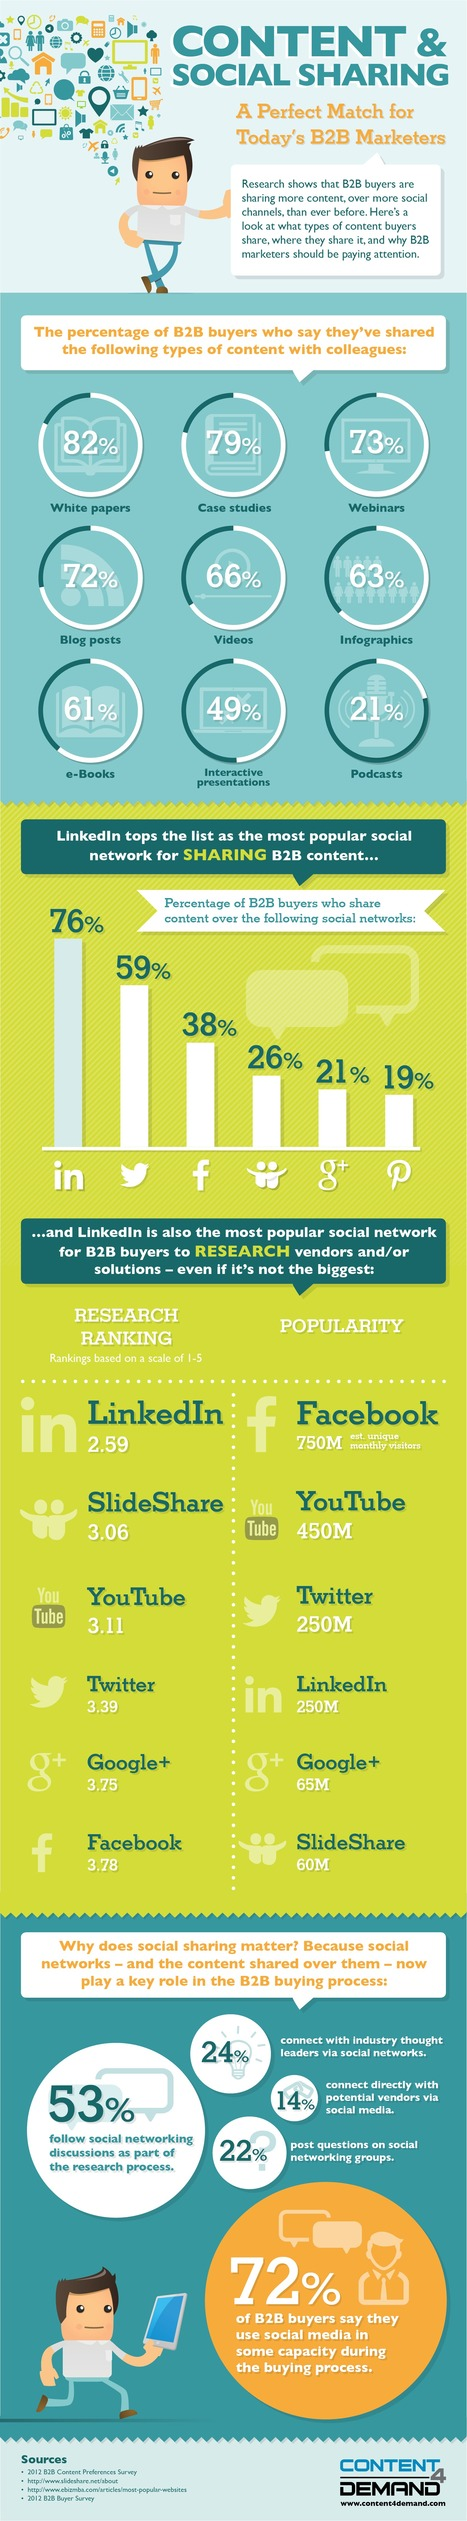 The Powerful Impact of Social Sharing & Content Marketing [Infographic] | Internet Strategy & E-Marketing | Scoop.it